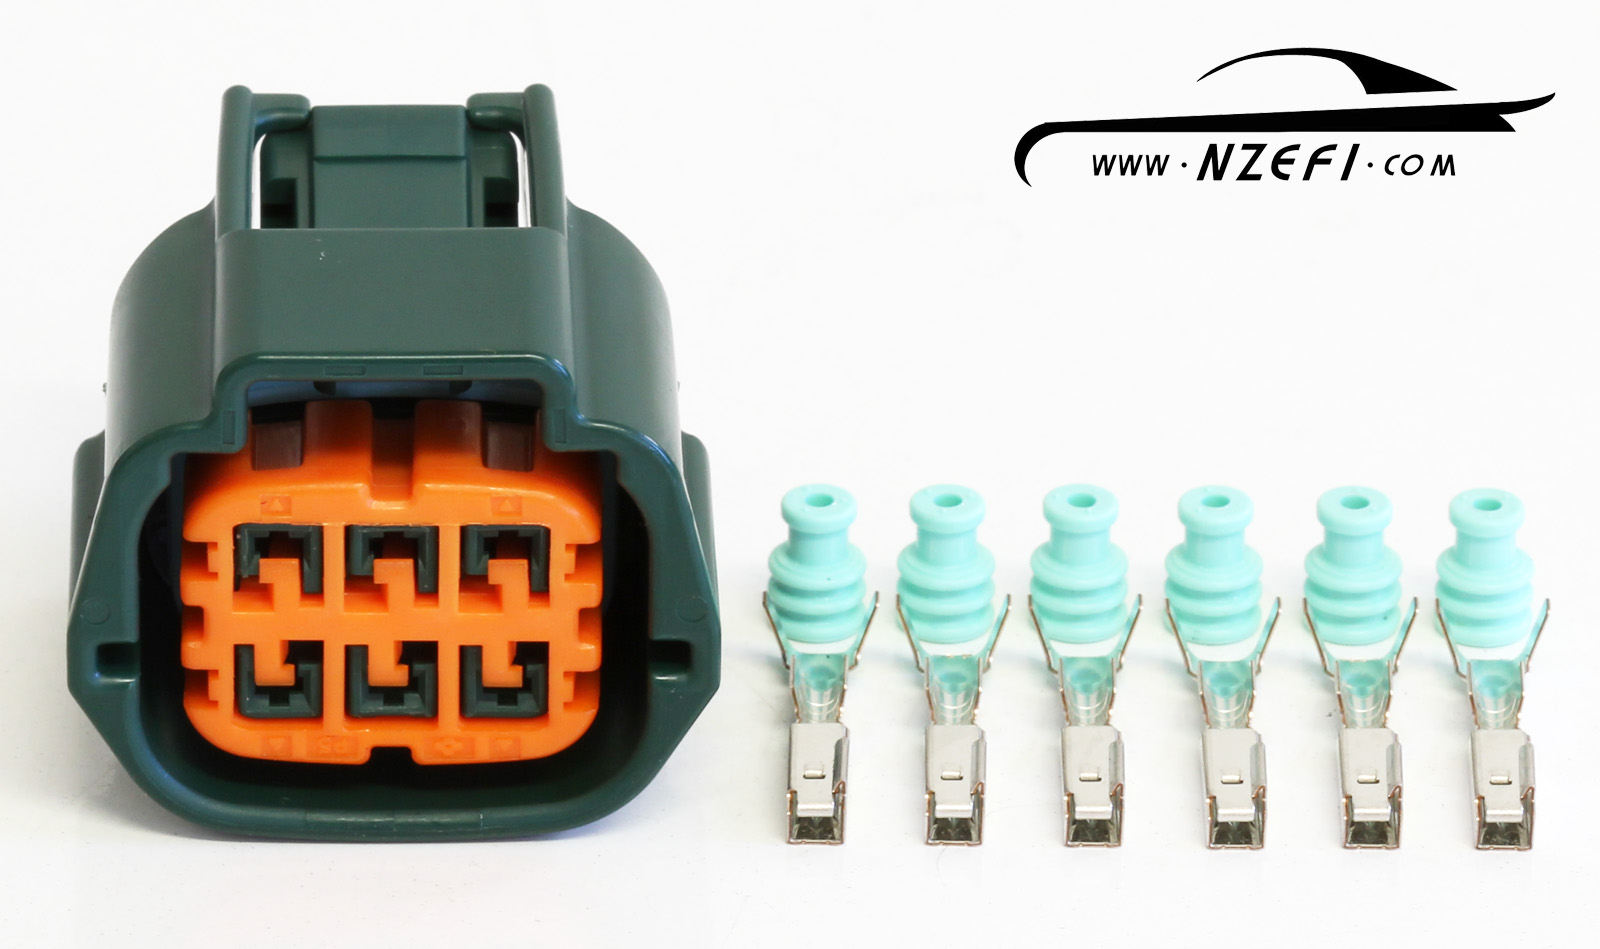 nissan vq35de electronic throttle (fly-by-wire) connector